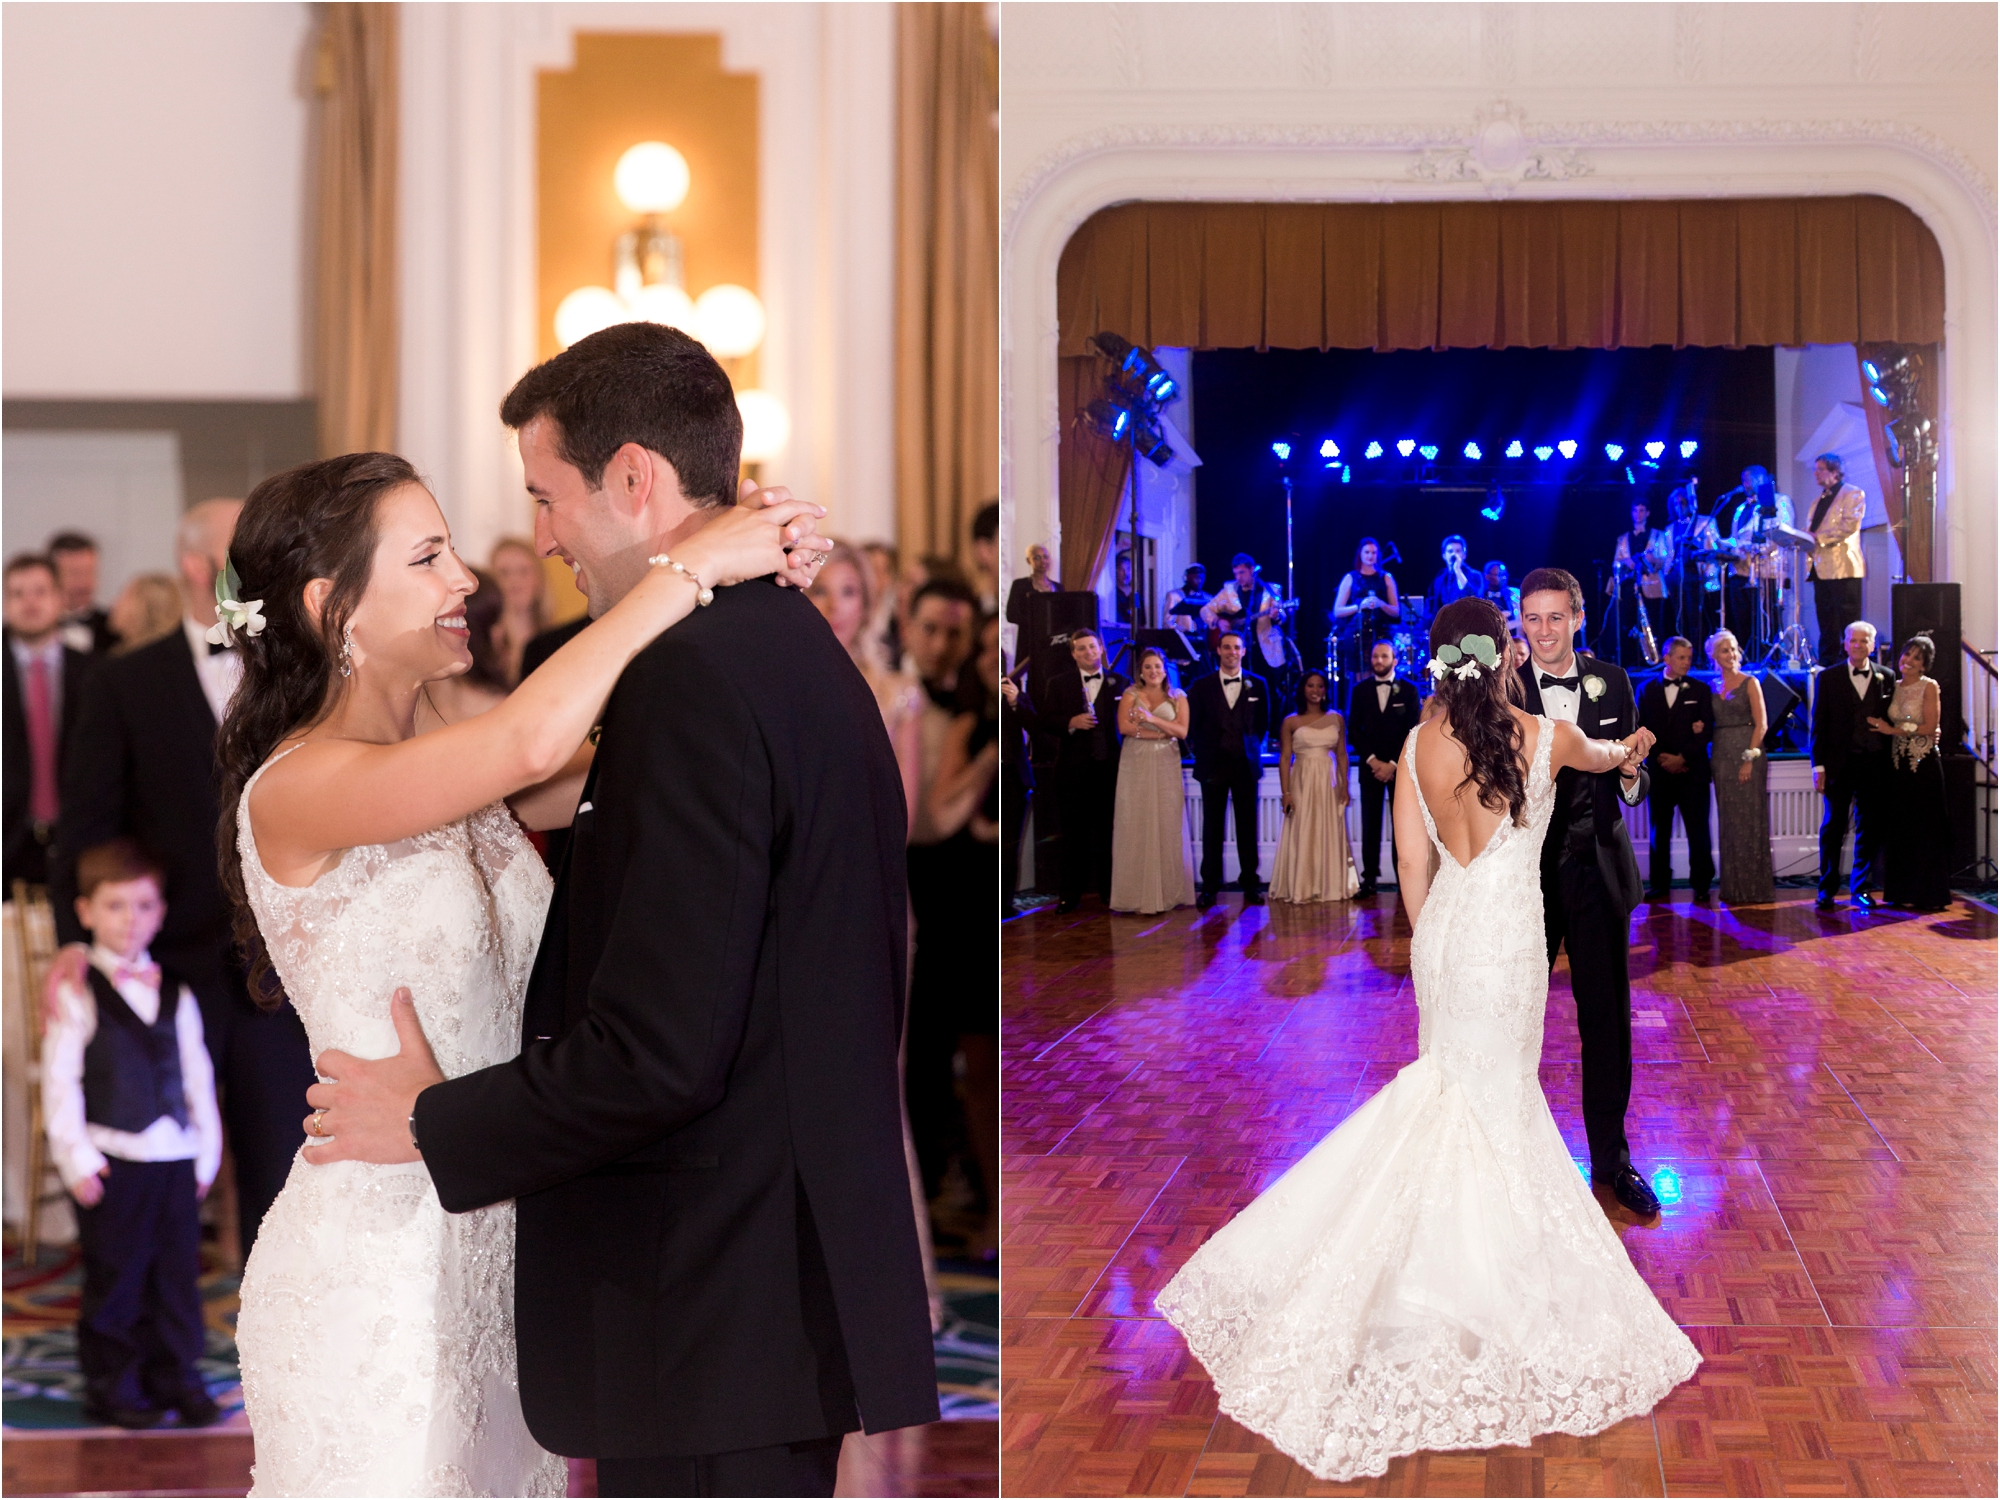 elaina-kevin-greek-wedding-the-jefferson-hotel-richmond-virginia-wedding-photos_0043.jpg